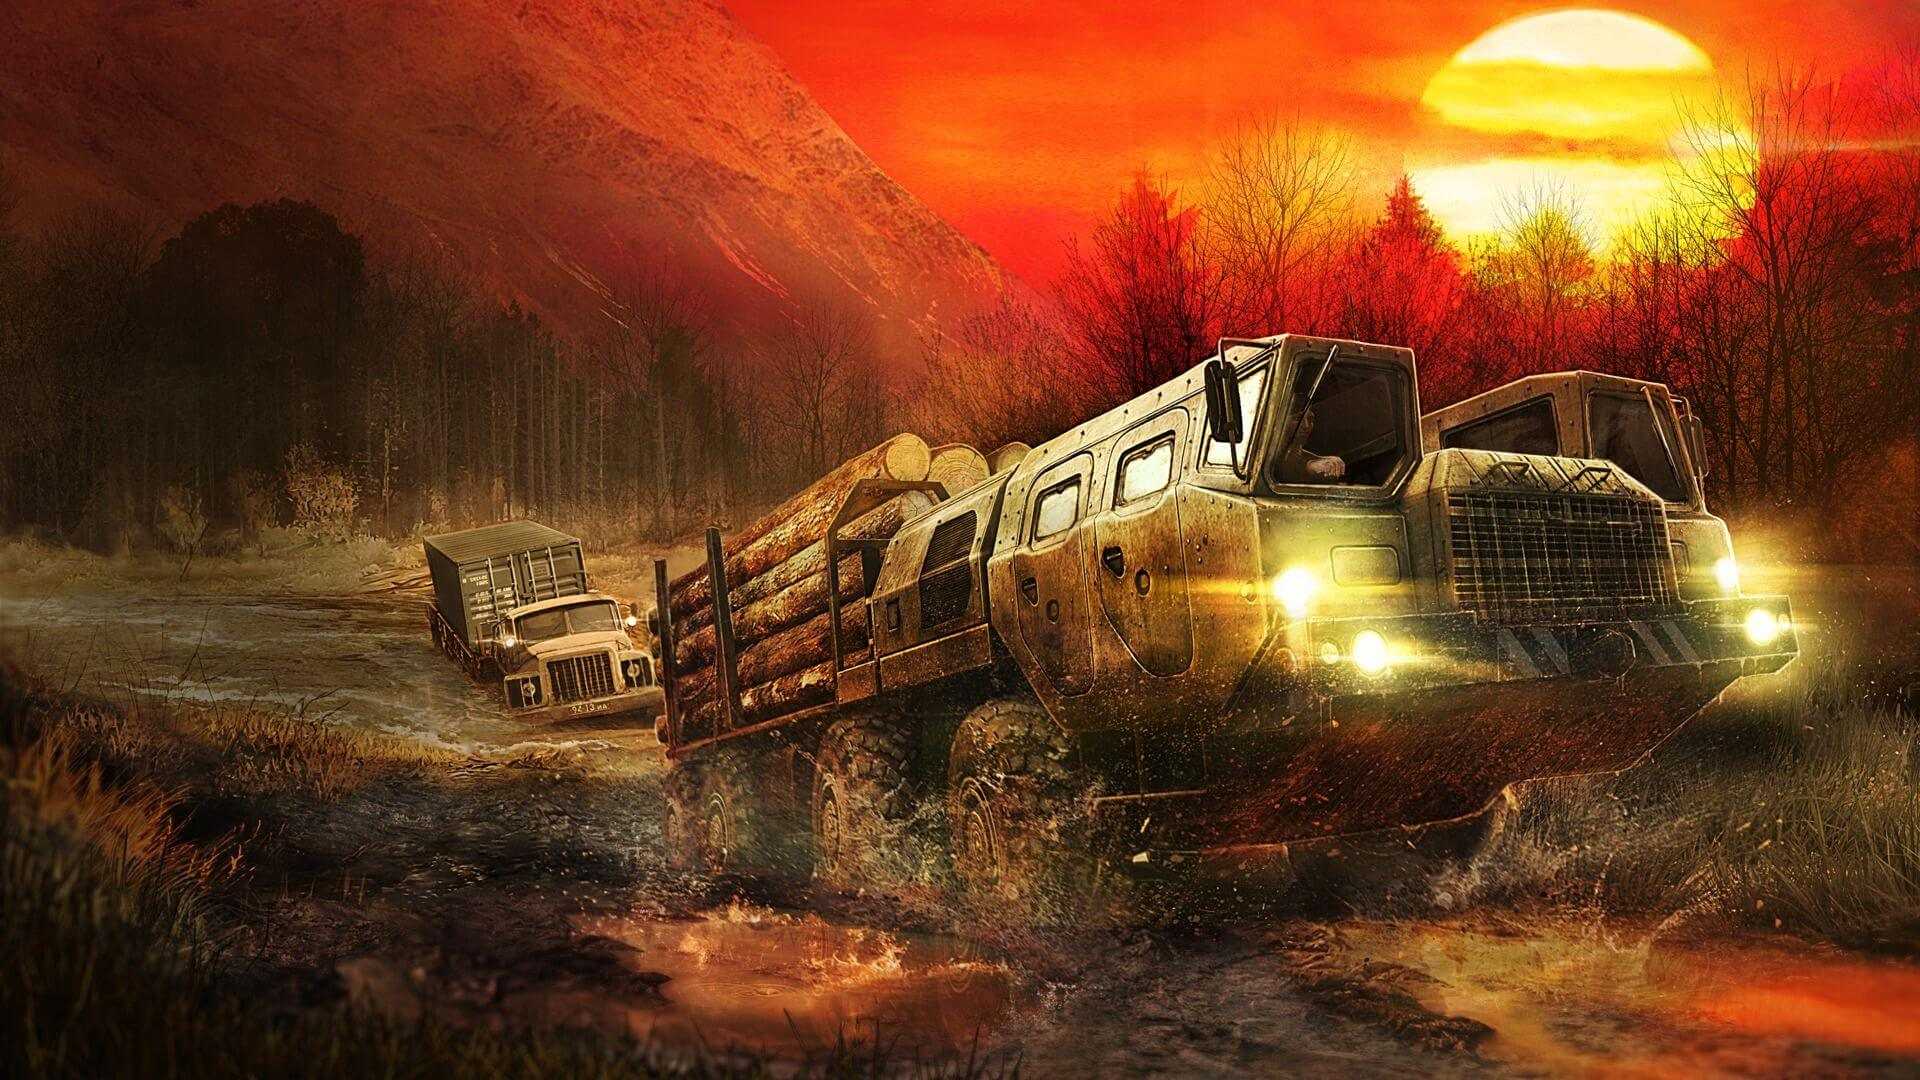 Mudrunner is Available for Free for a Limited Time